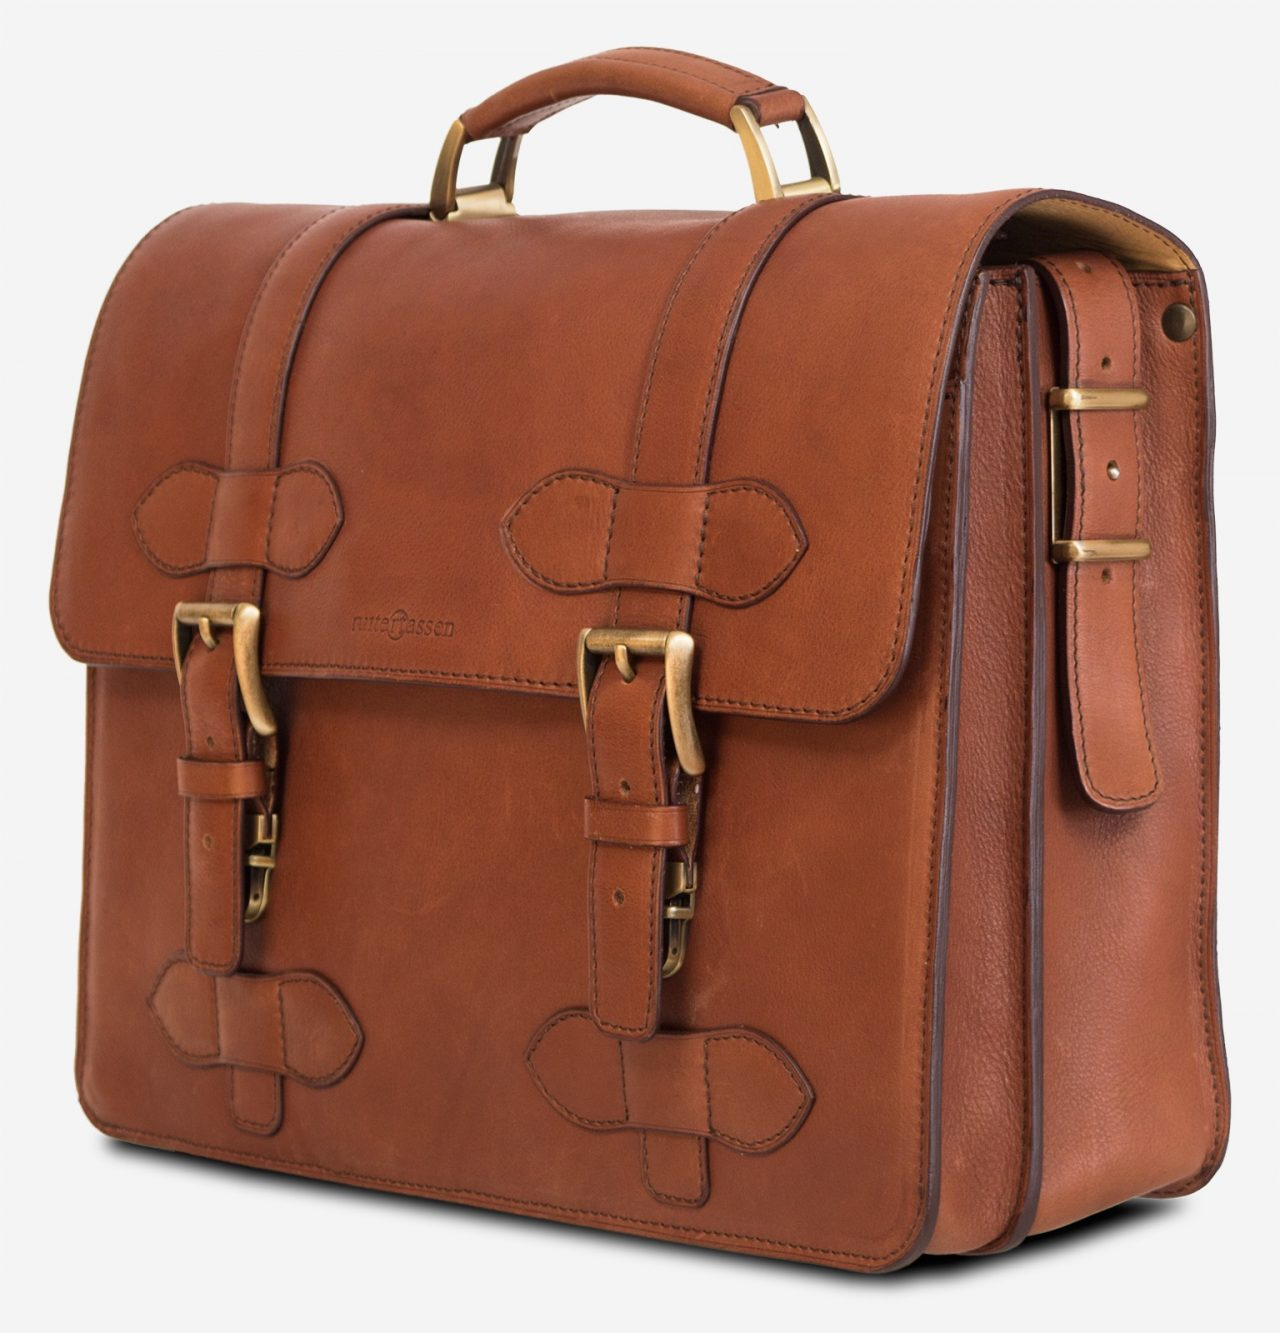 Side view of the handmade brown vegetable-tanned leather briefcase for men.